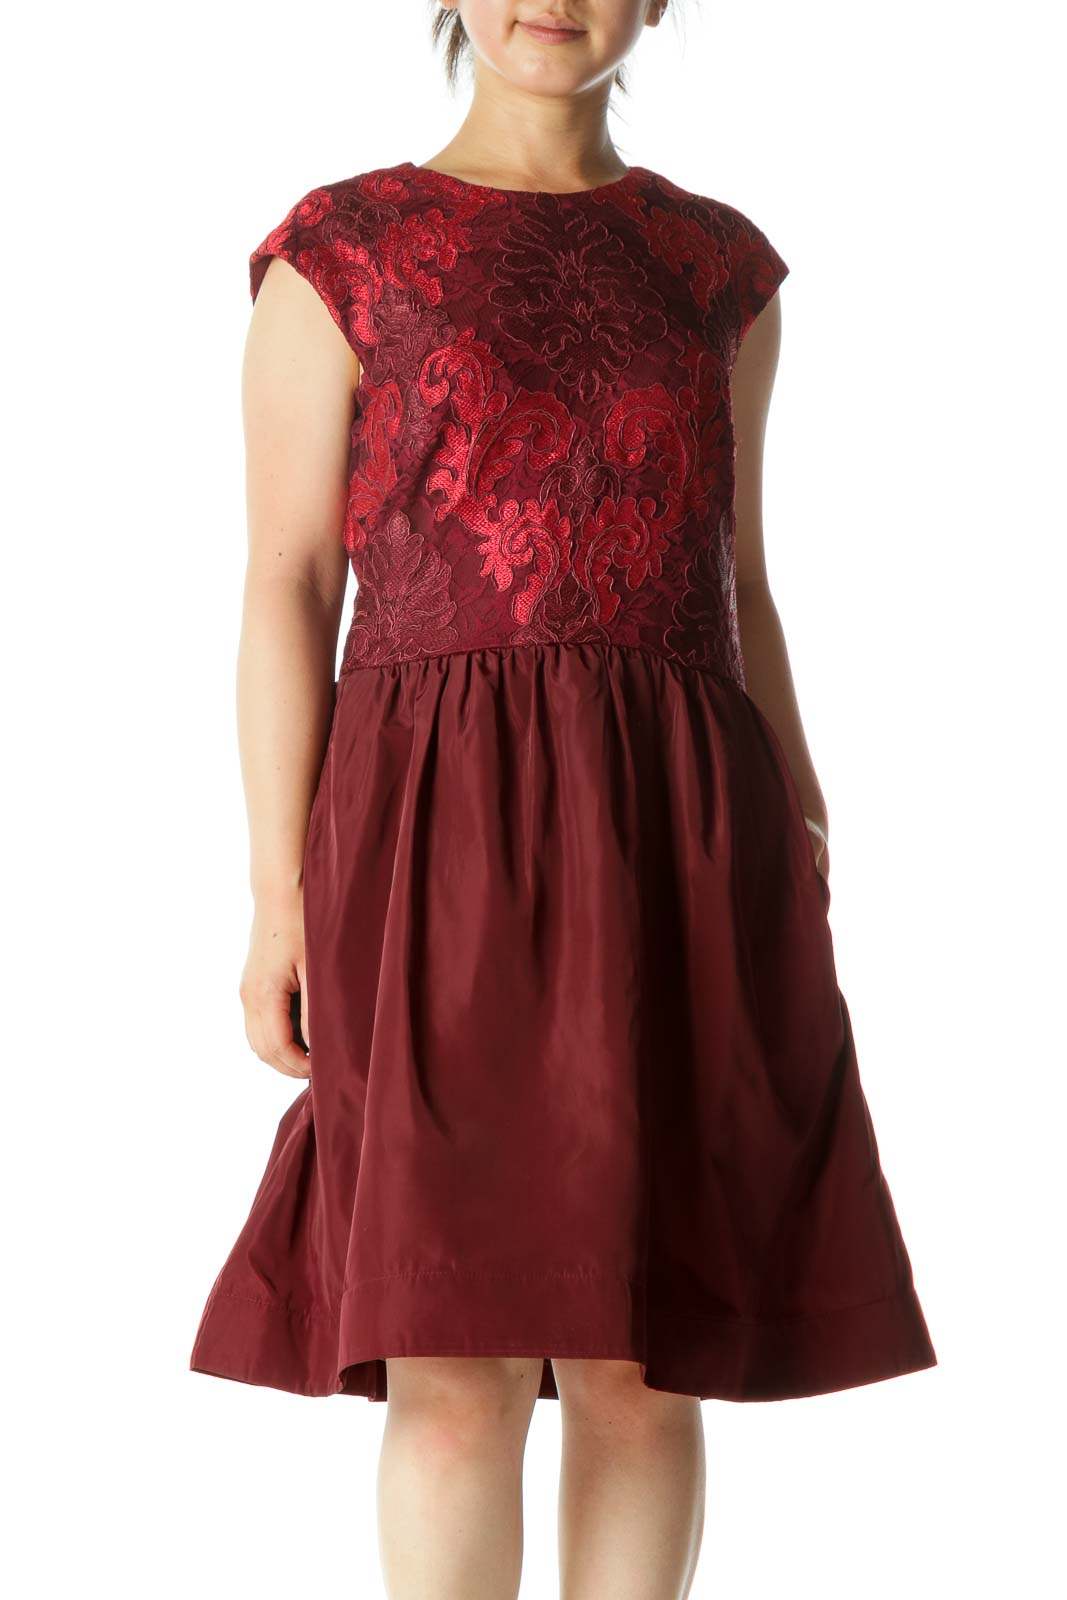 Burgundy Red Lace Knit Cinched Waist Structured Skirt-Rim Cocktail Dress